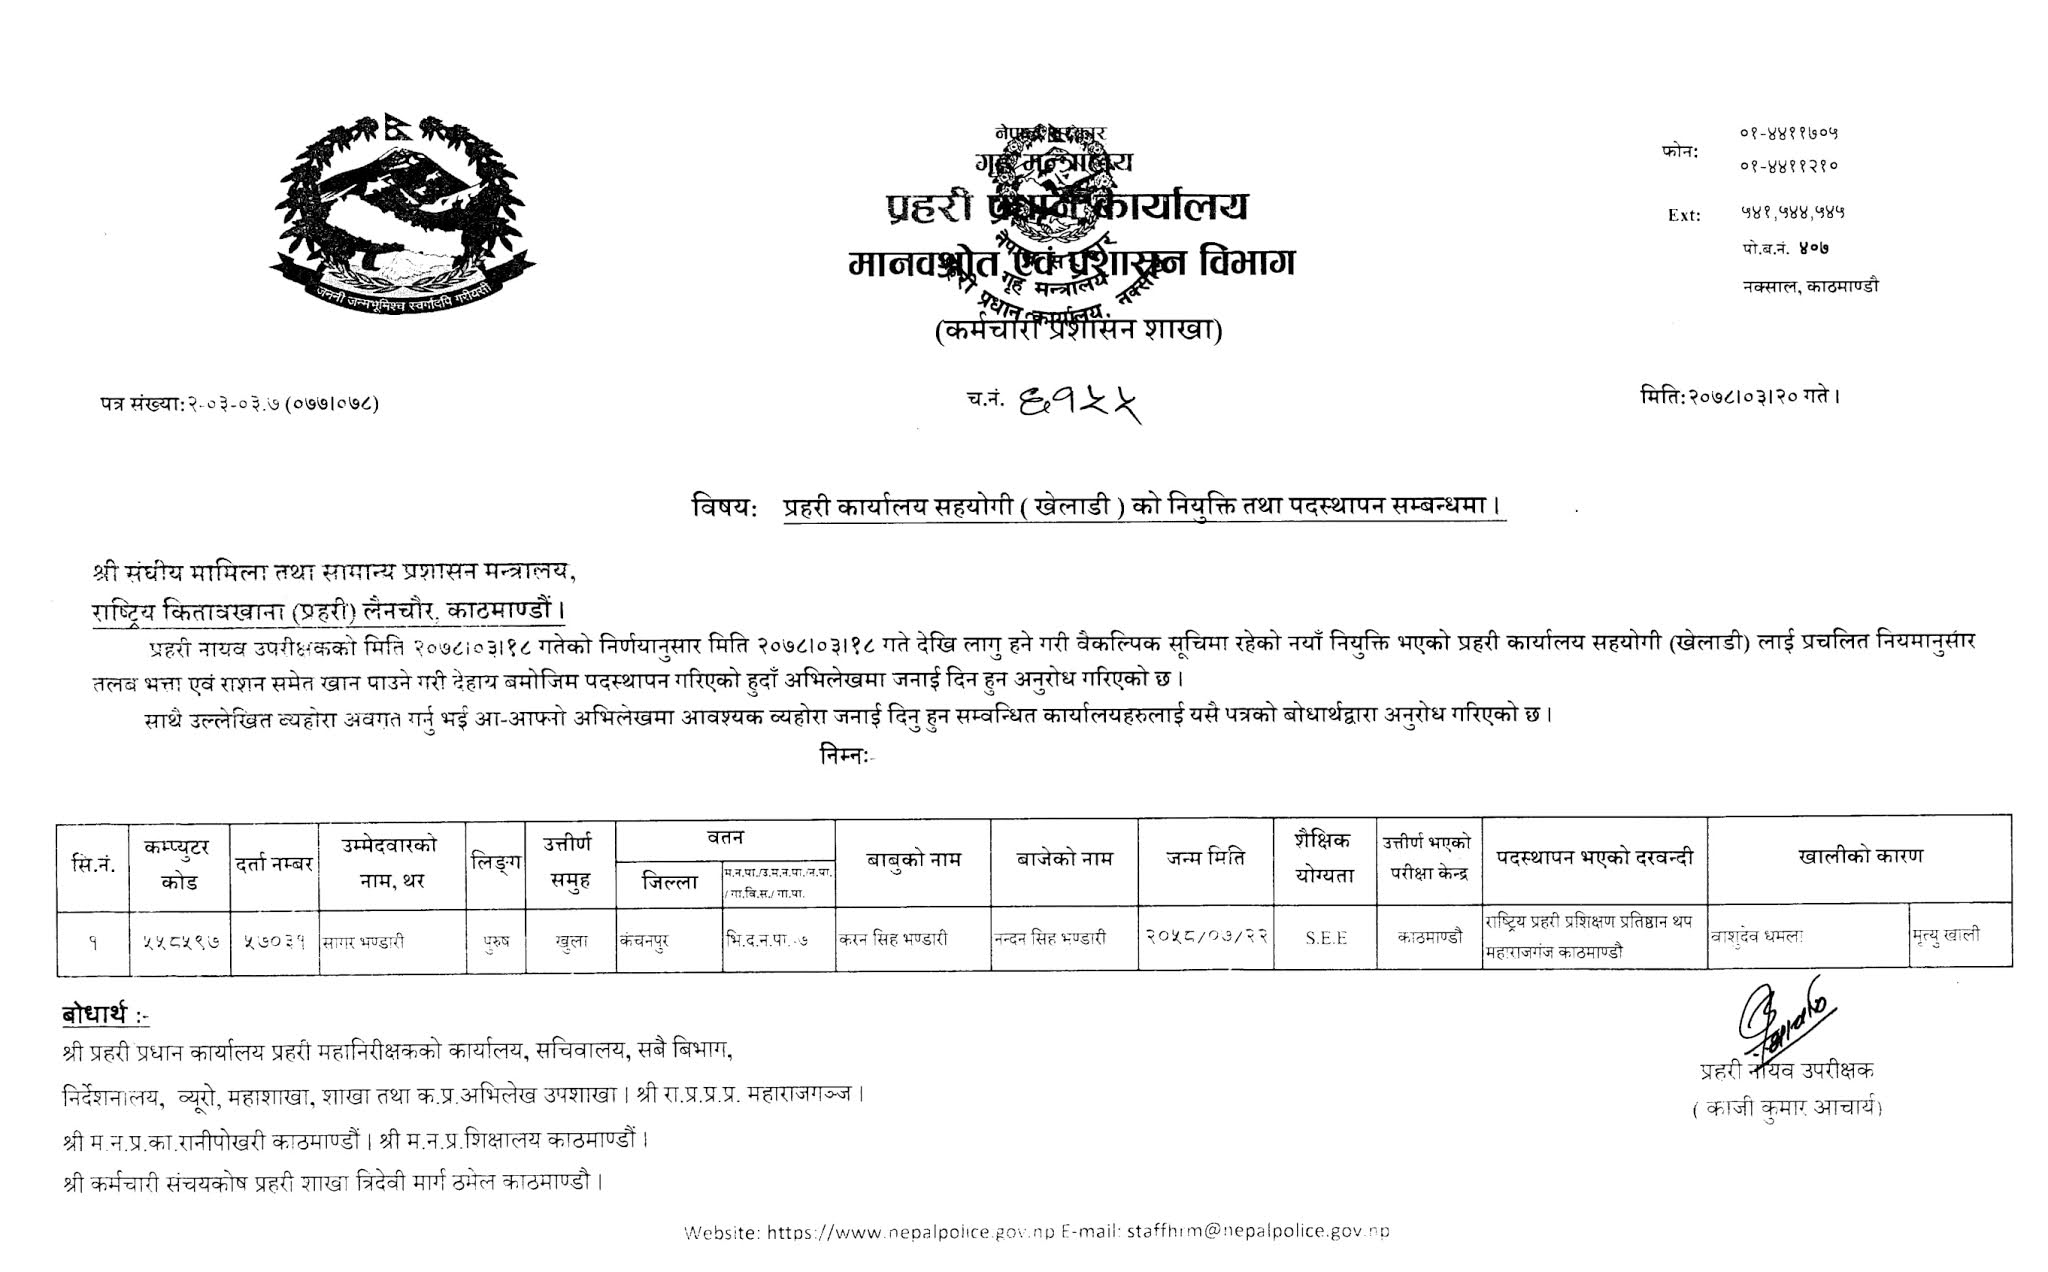 Police Office Assistant Appointment & Posting List (Player):